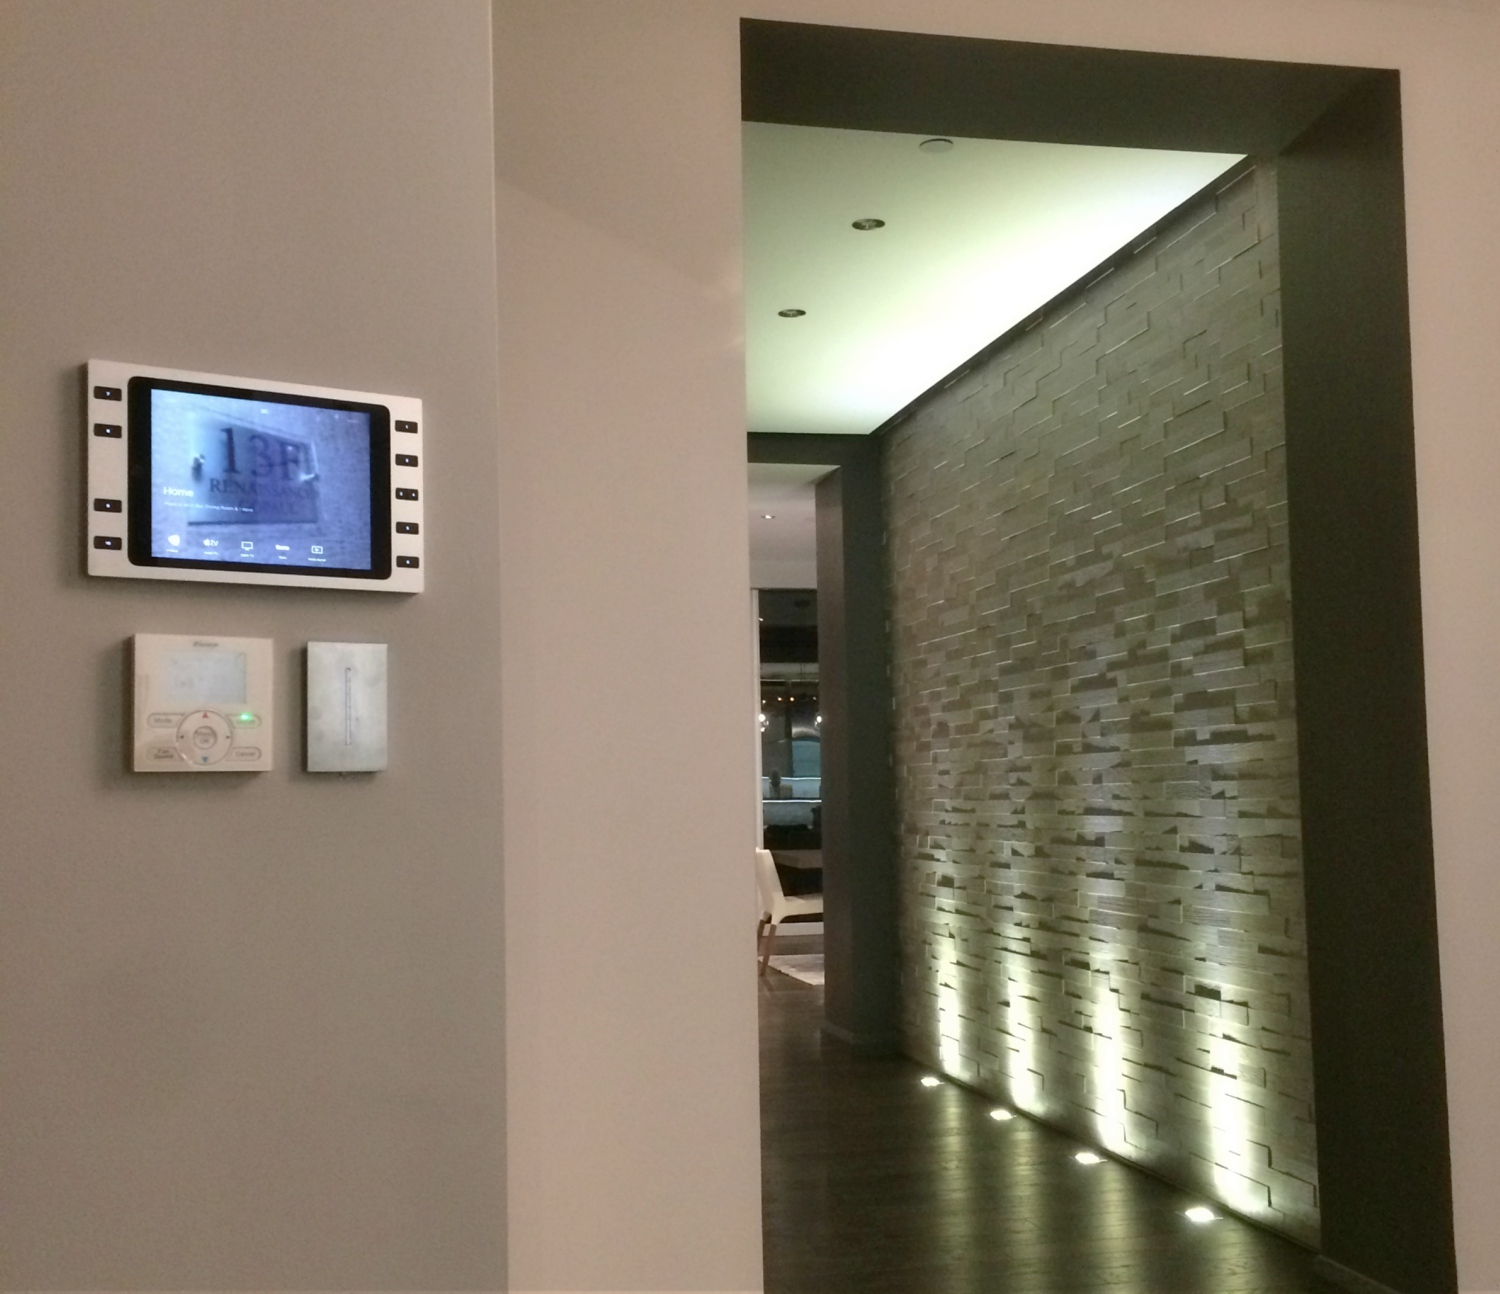 Savant Control and Lutron working together in this luxury apartment with flicker free LED lighting control